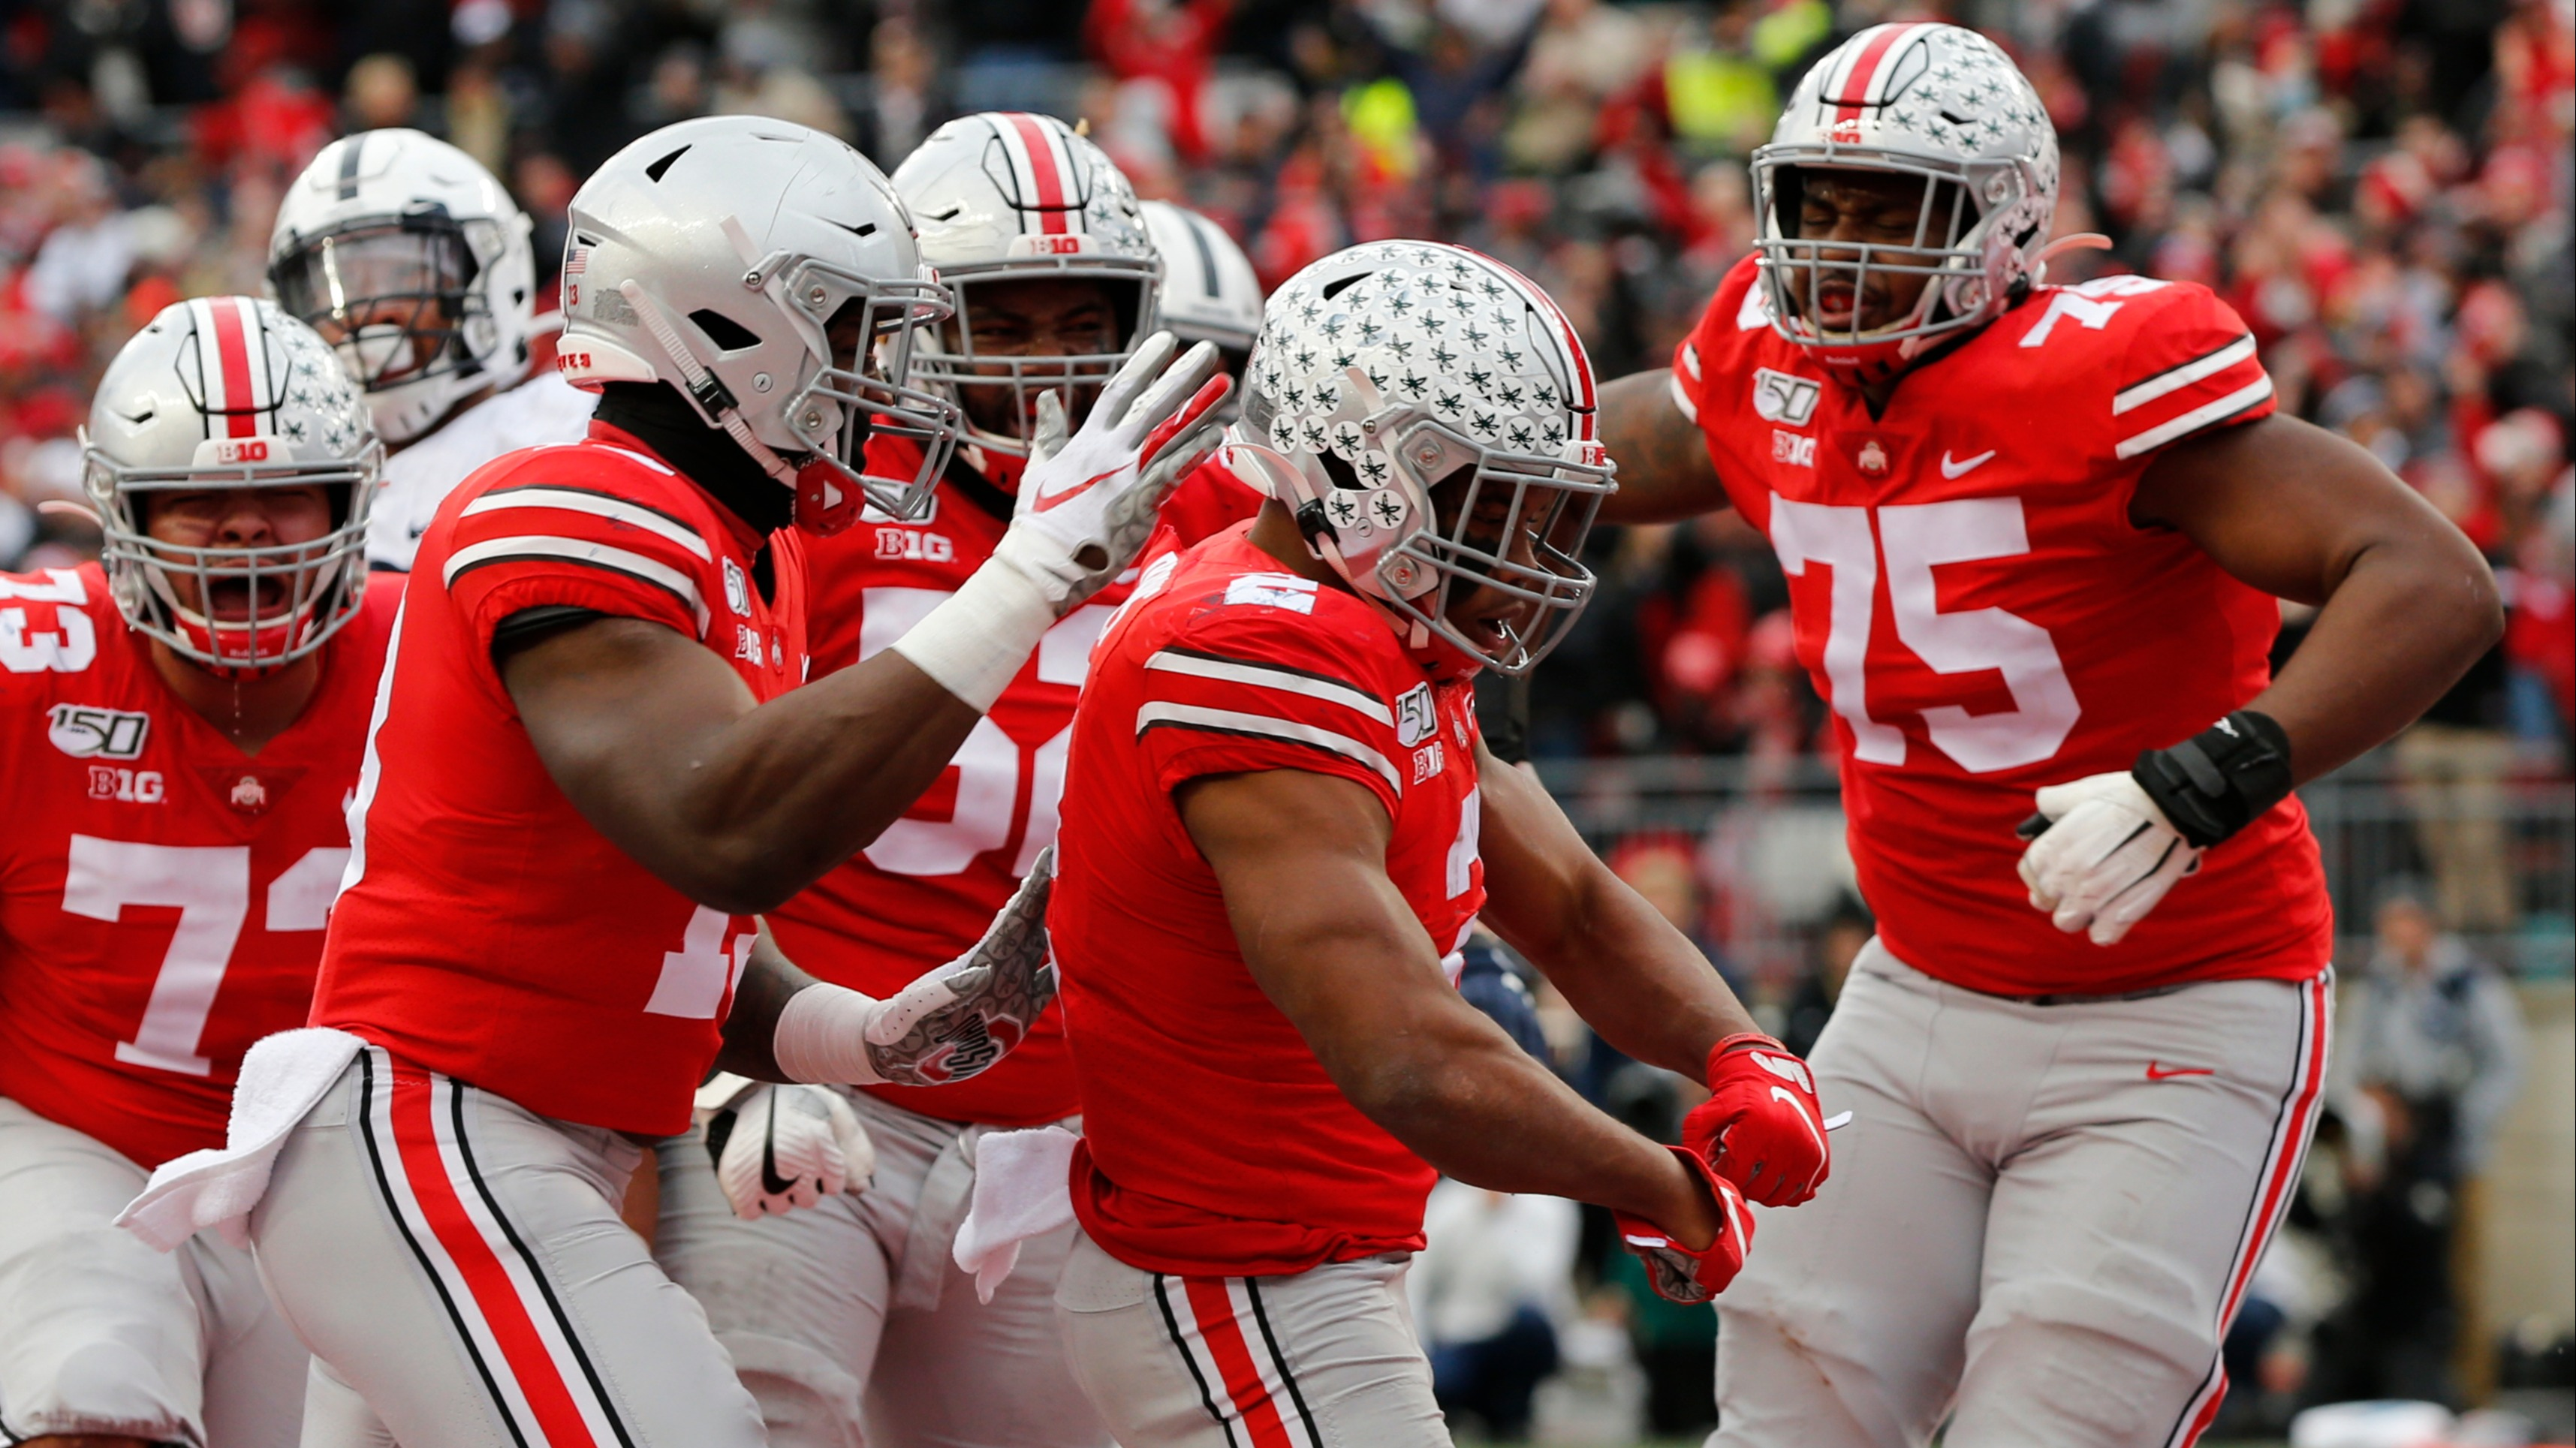 Best College Football Games 2020.Odds Shorten On Ohio State Clemson To Win 2020 College